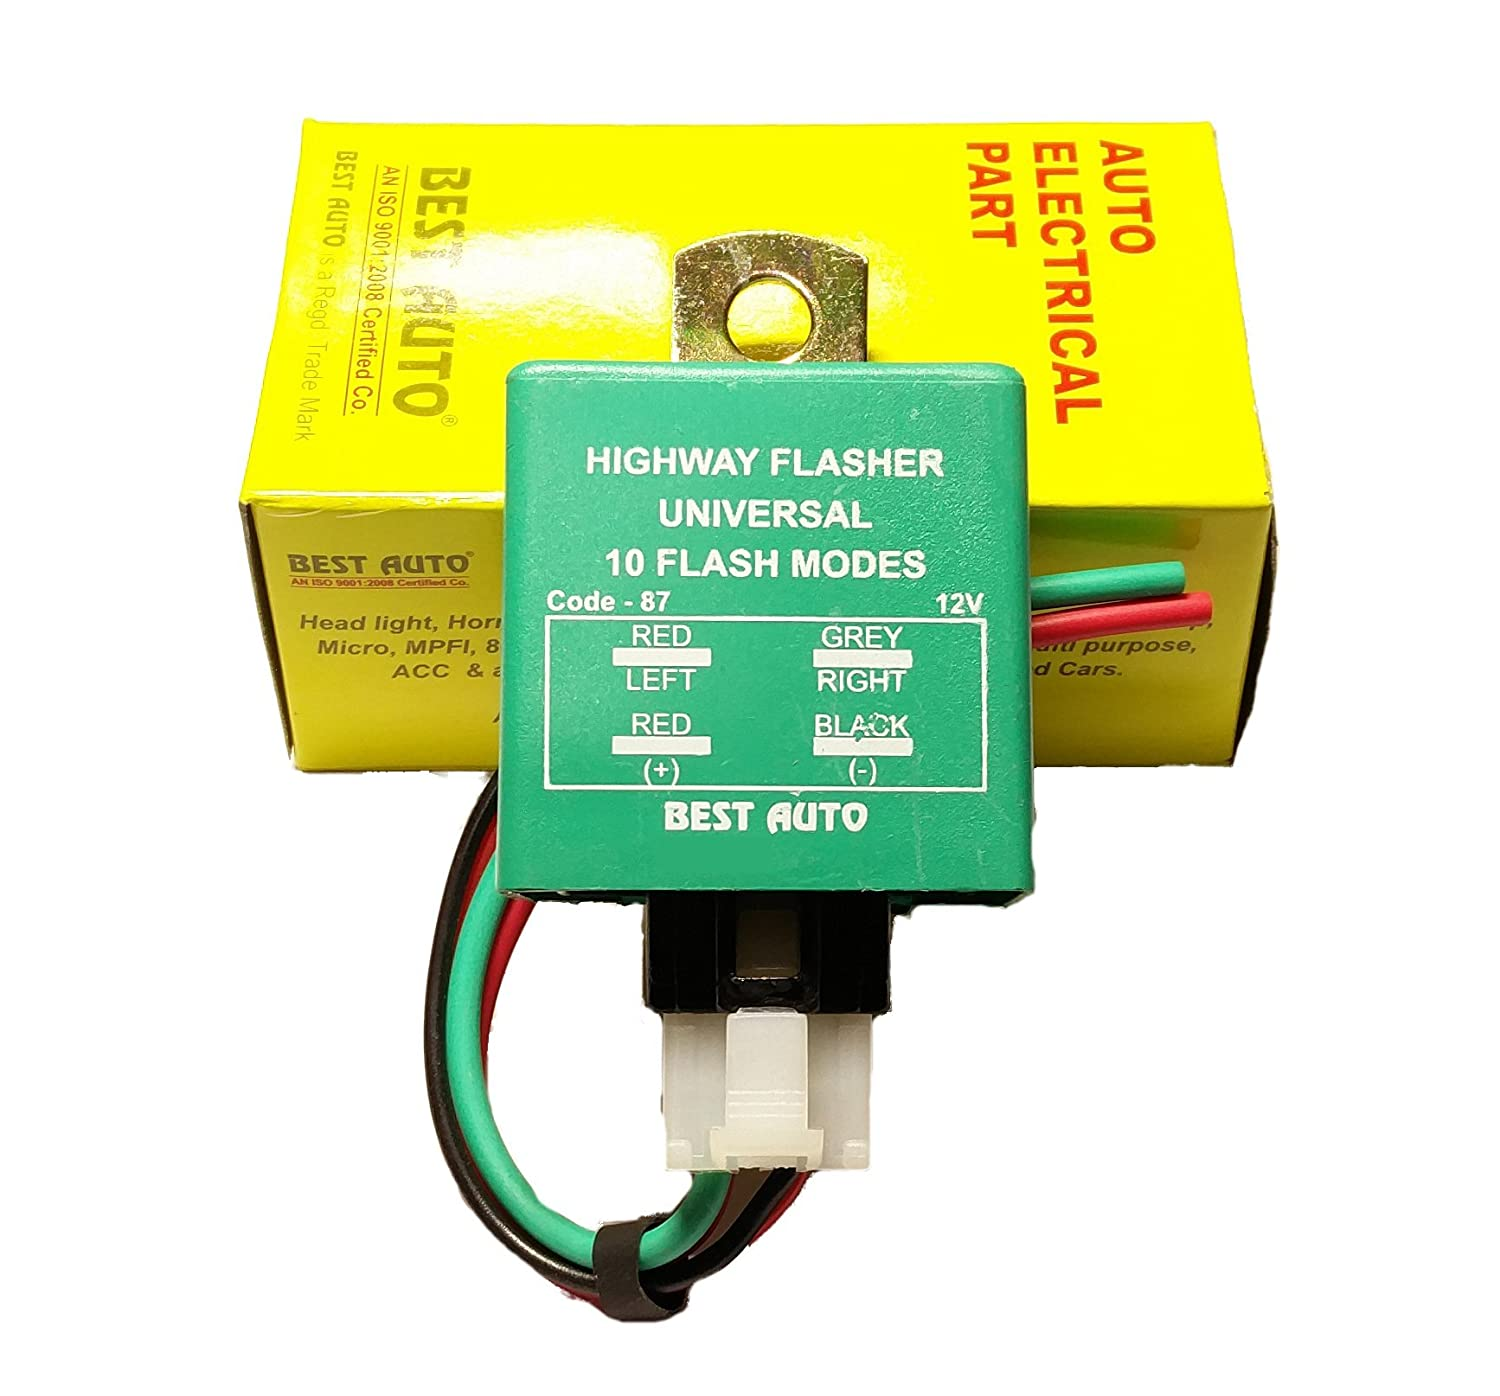 Best Auto Universal Highway Indicator Flasher With 10 Modes Automotive Hazard Switch Wiring Diagram Free Download Code 87 Car Motorbike